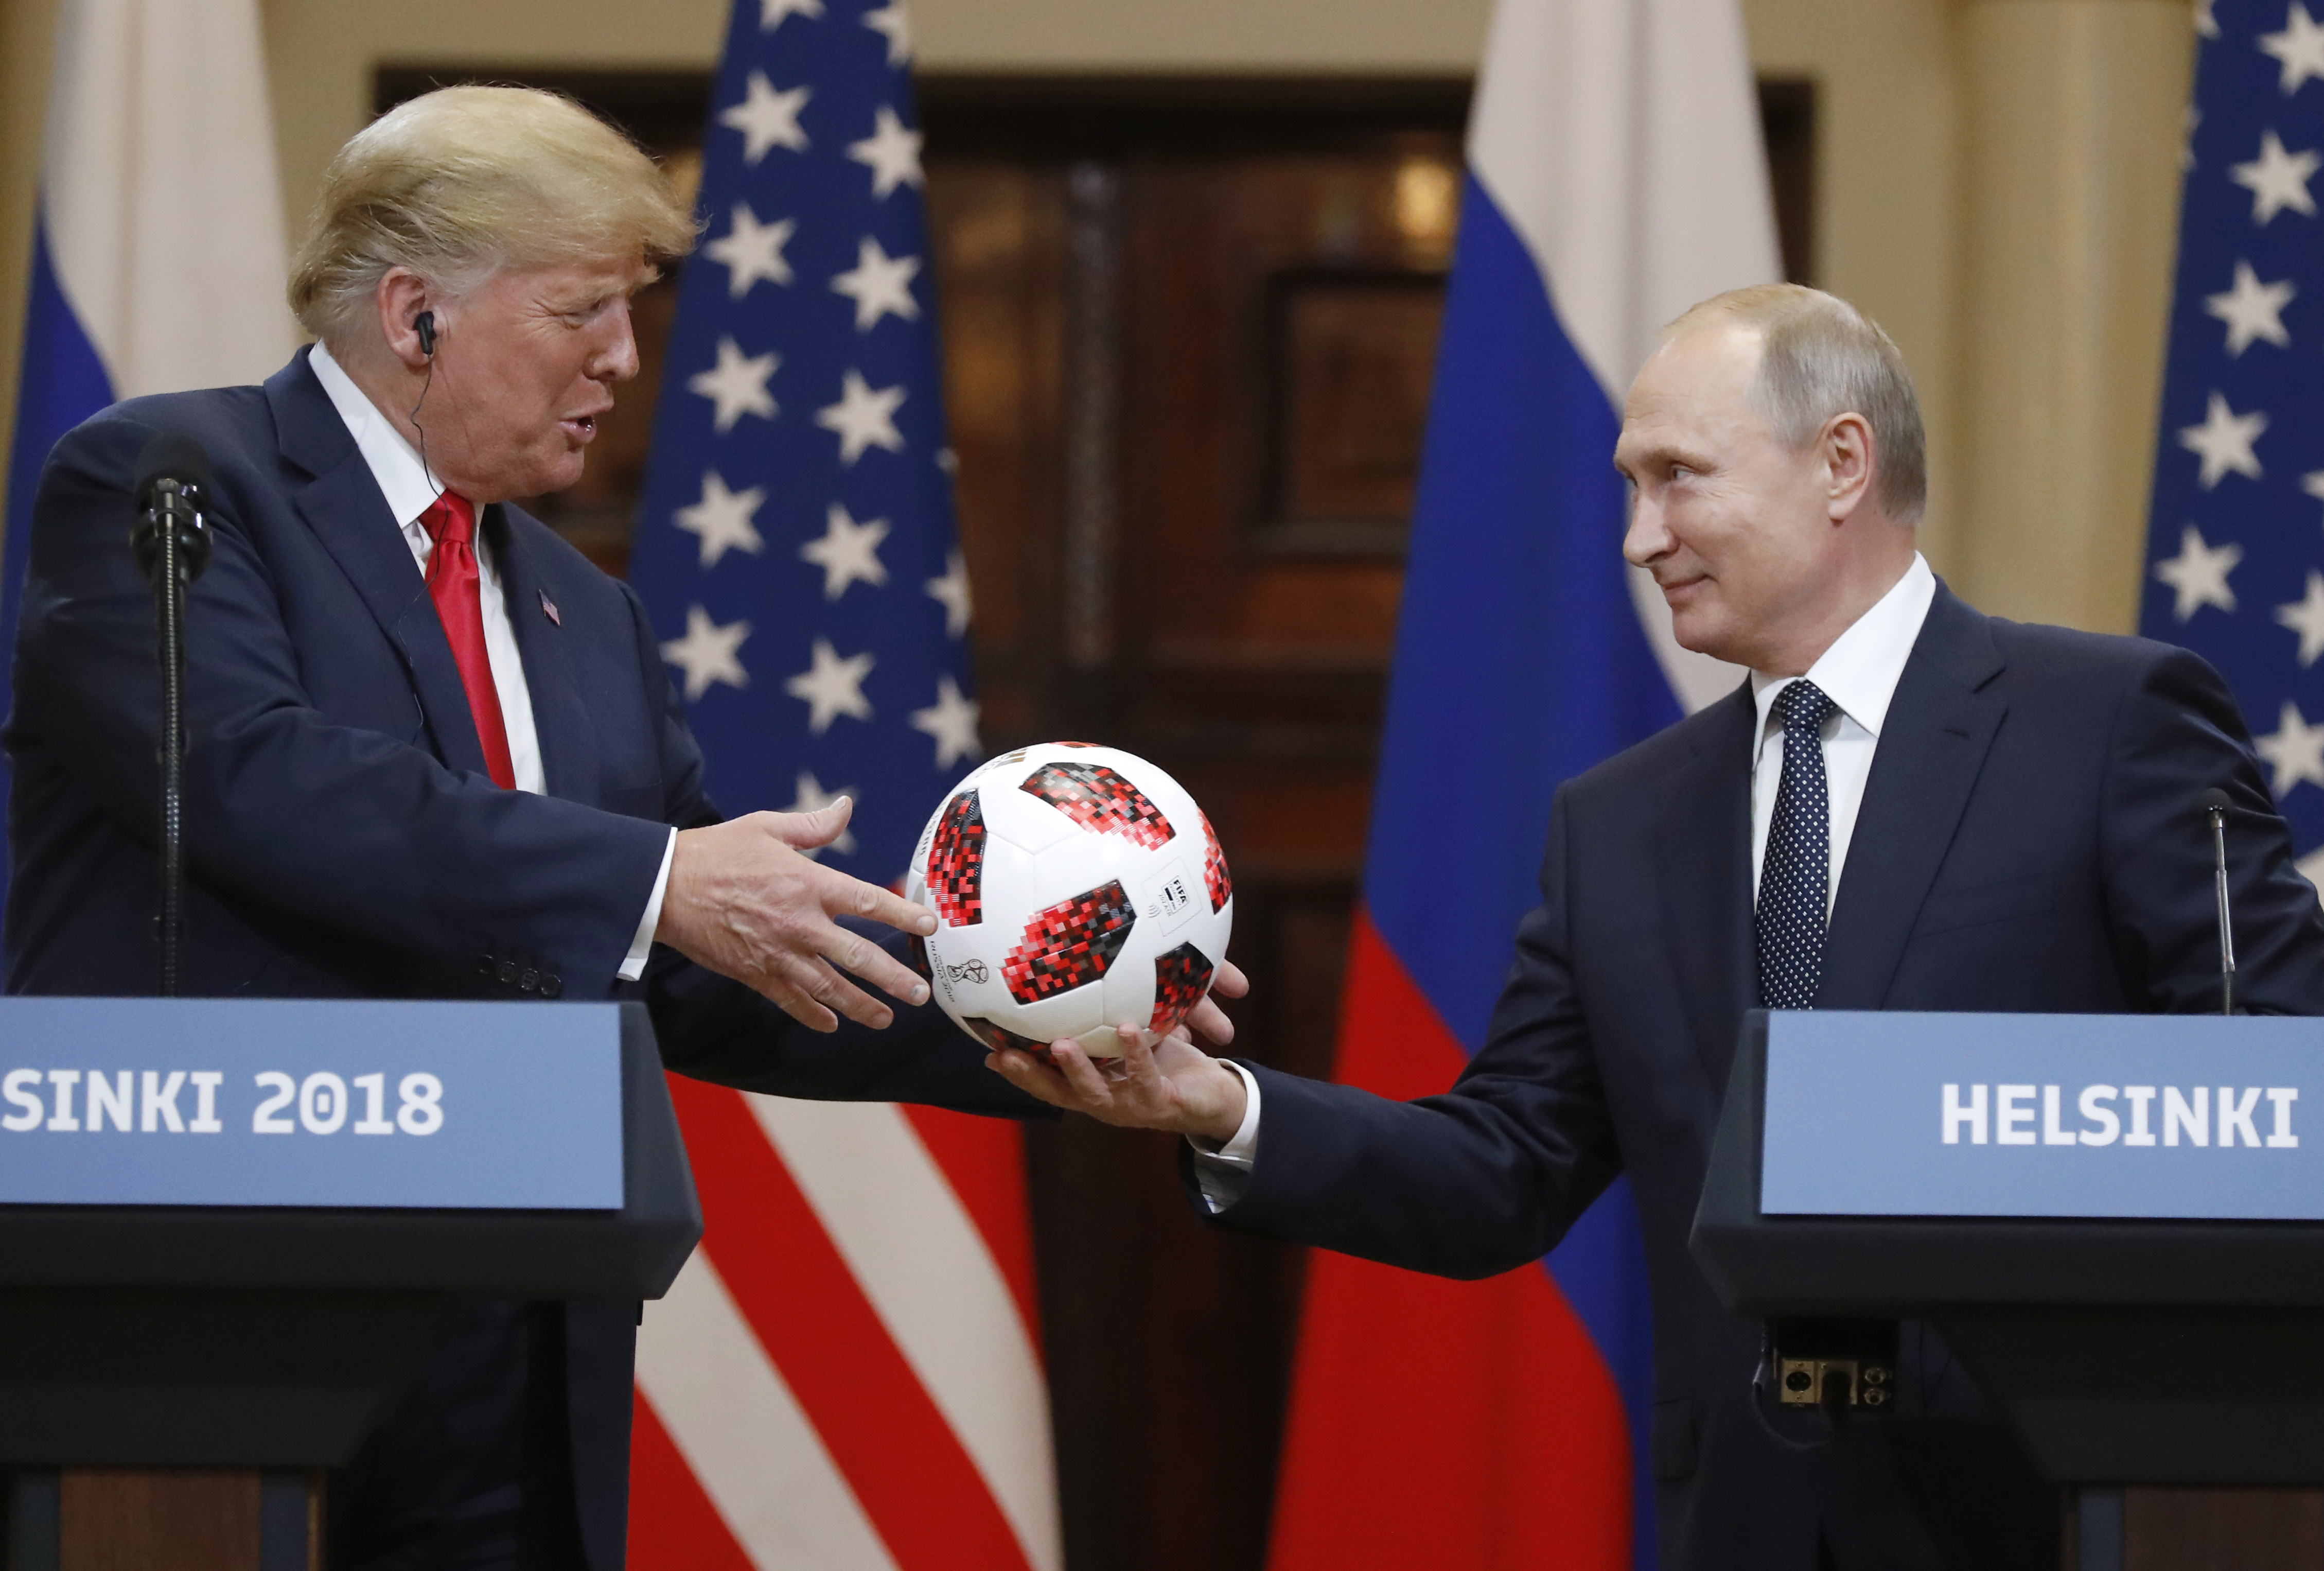 Can Trump give Barron the soccer ball he got from Putin? It's complicated -  The Boston Globe